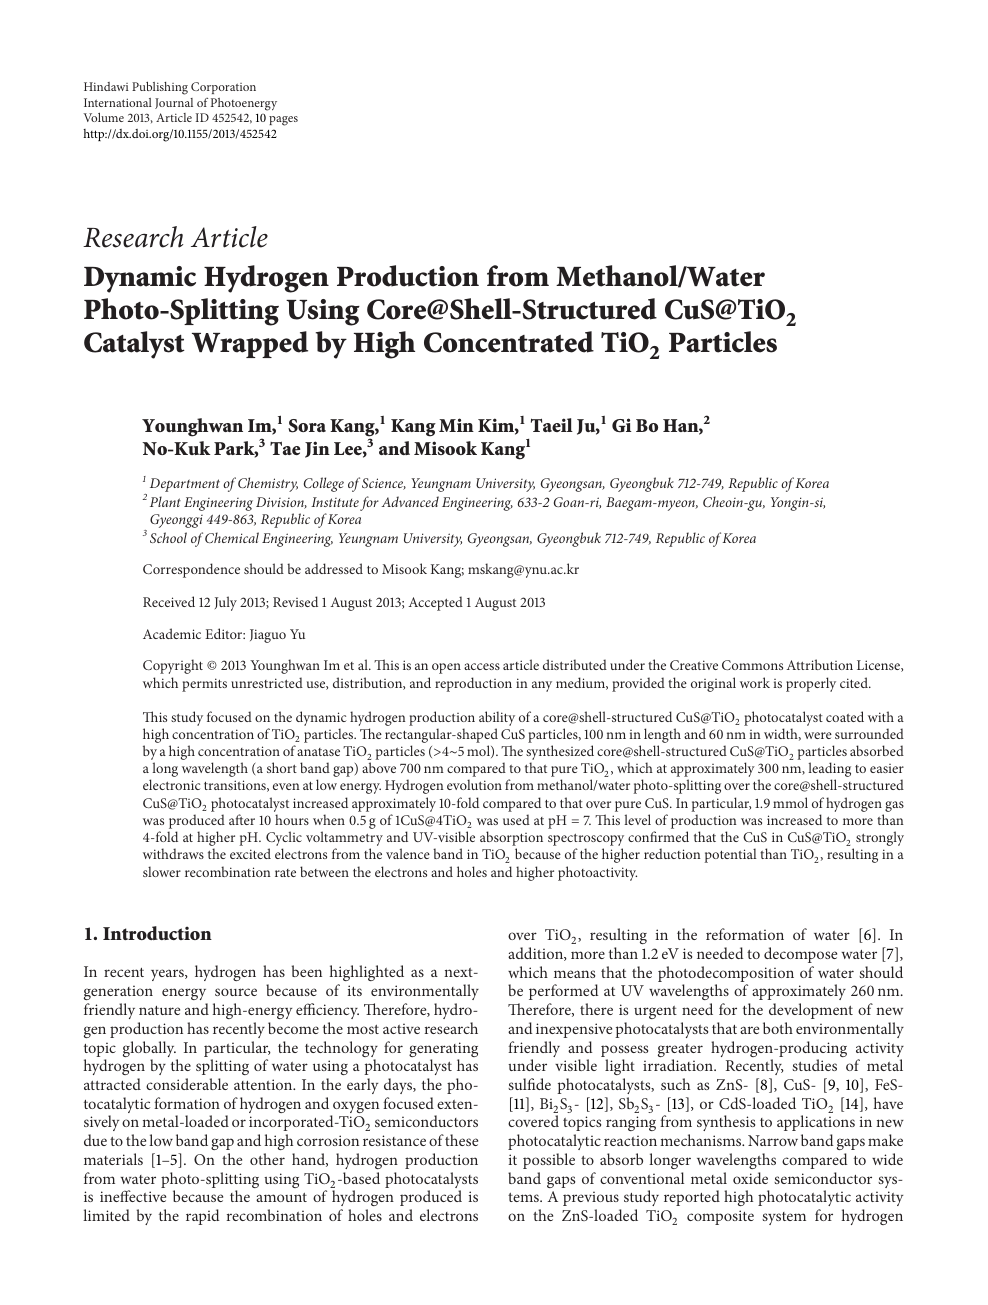 Dynamic Hydrogen Production from Methanol/Water Photo